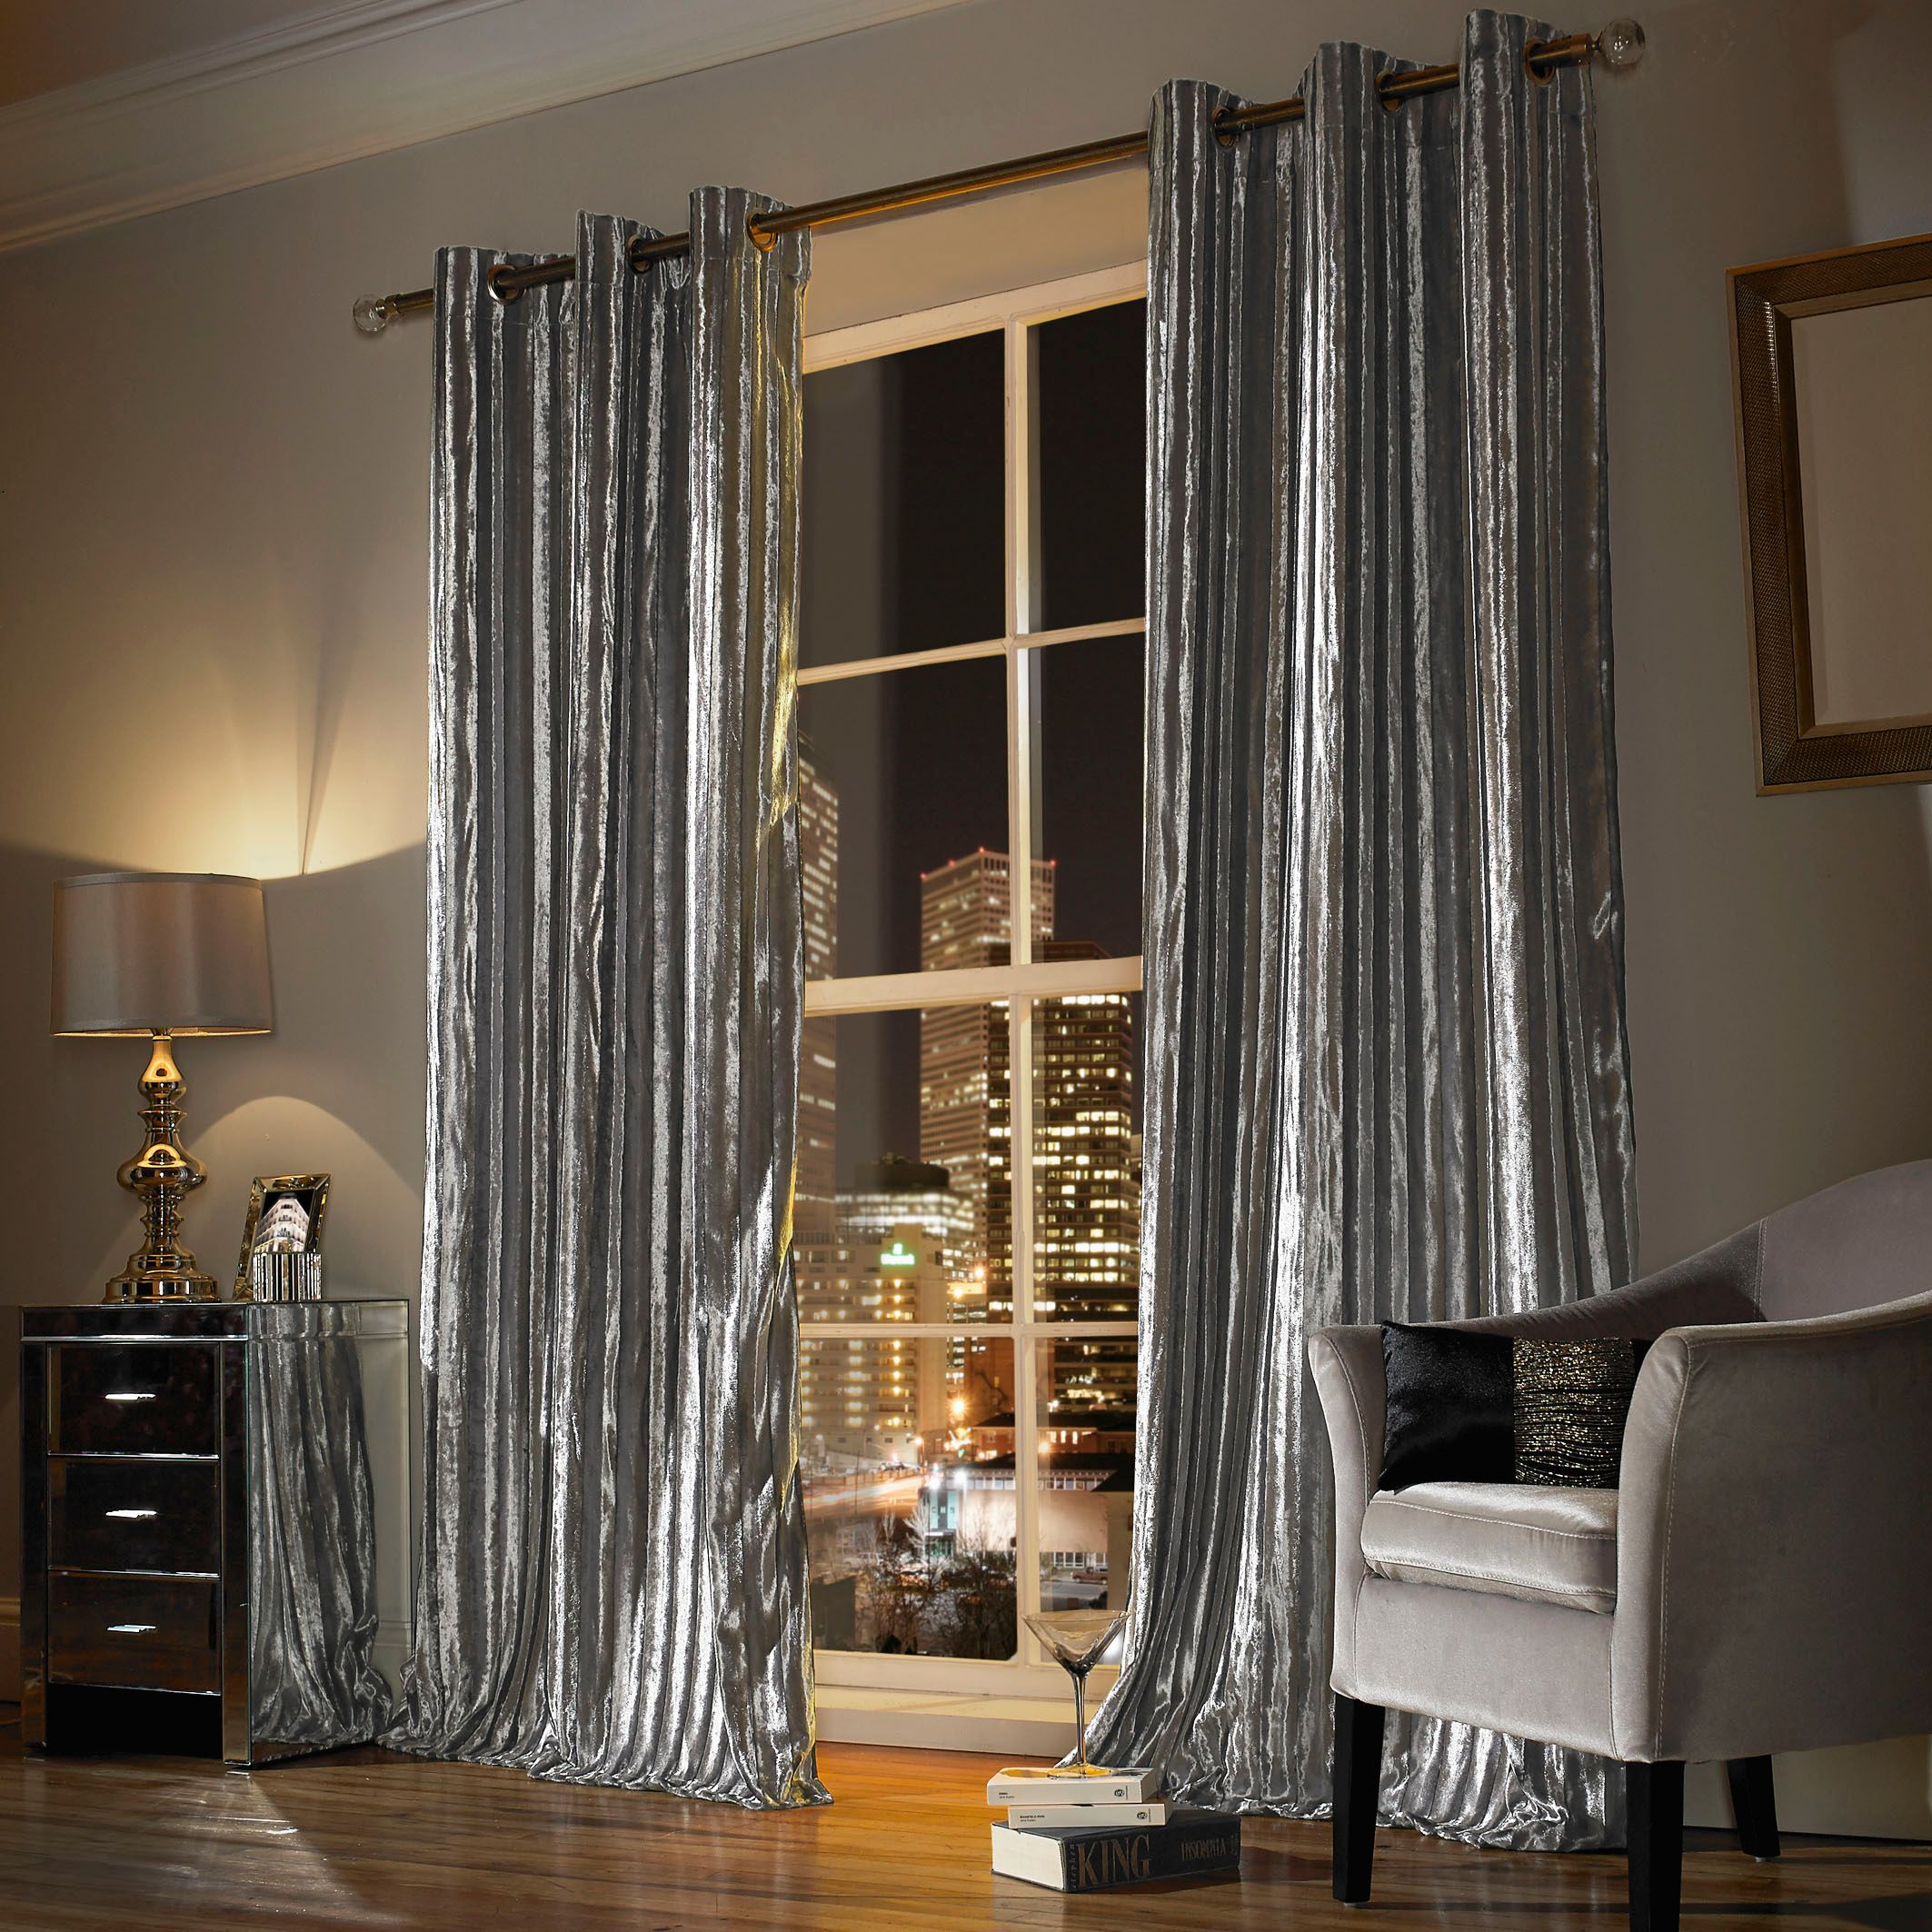 Kylie Minogue Kylie Minogue Iliana lined eyelet curtain in silver 90x90